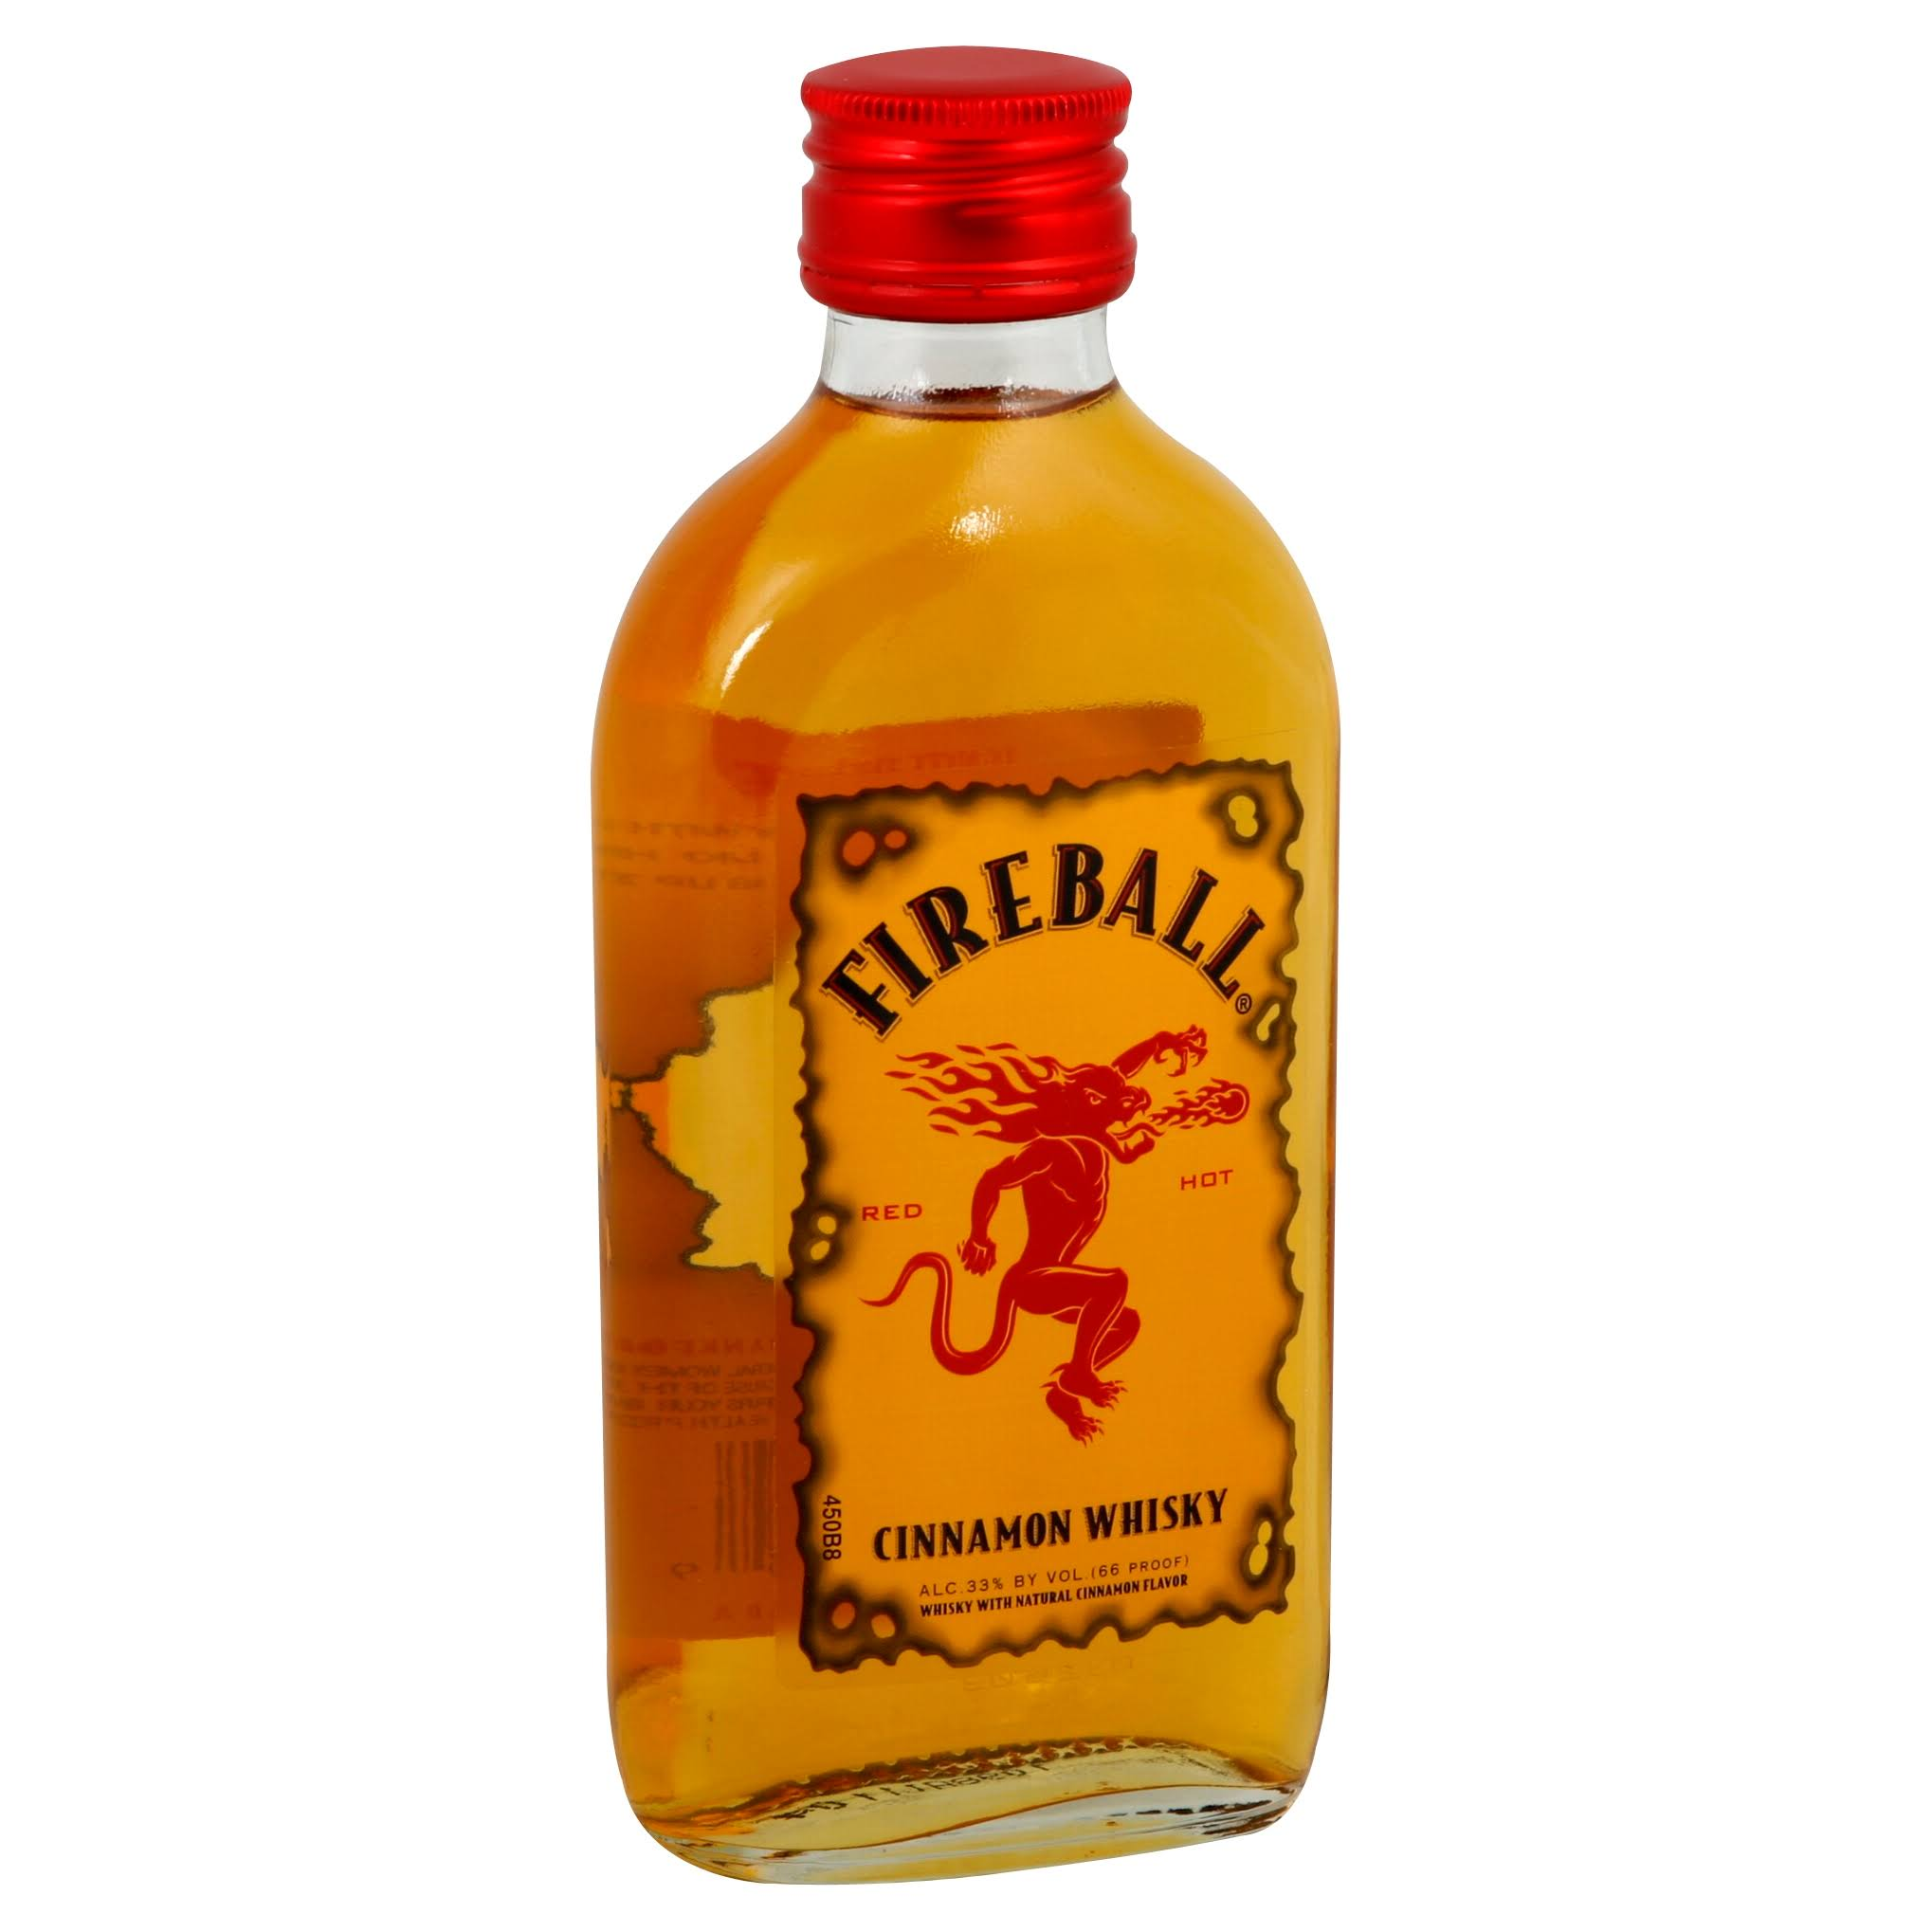 Fireball Whisky, Cinnamon - 200 ml